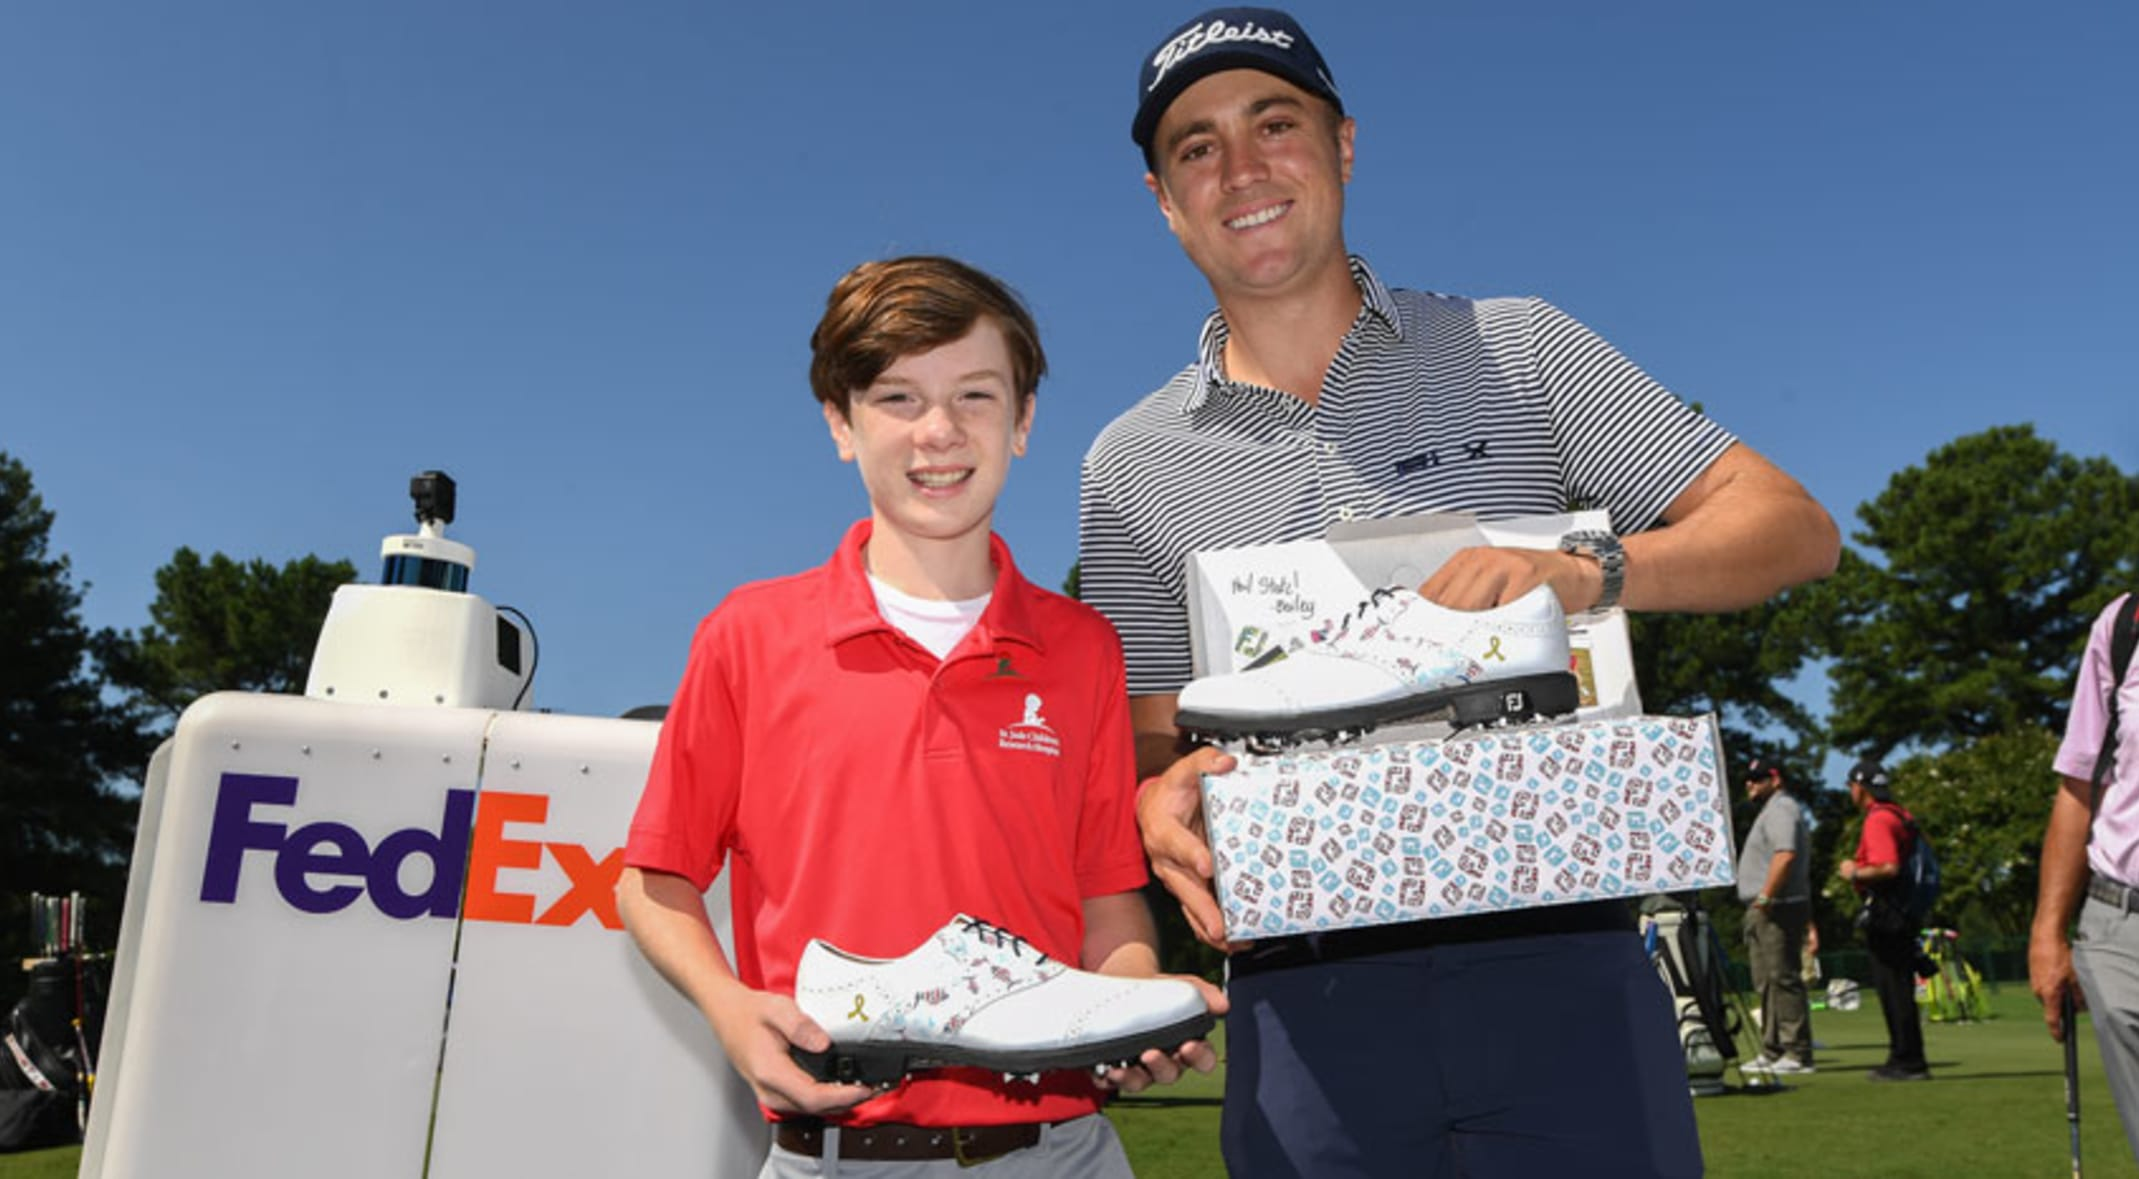 Justin Thomas To Wear Custom Shoes Designed By Young Cancer Survivor